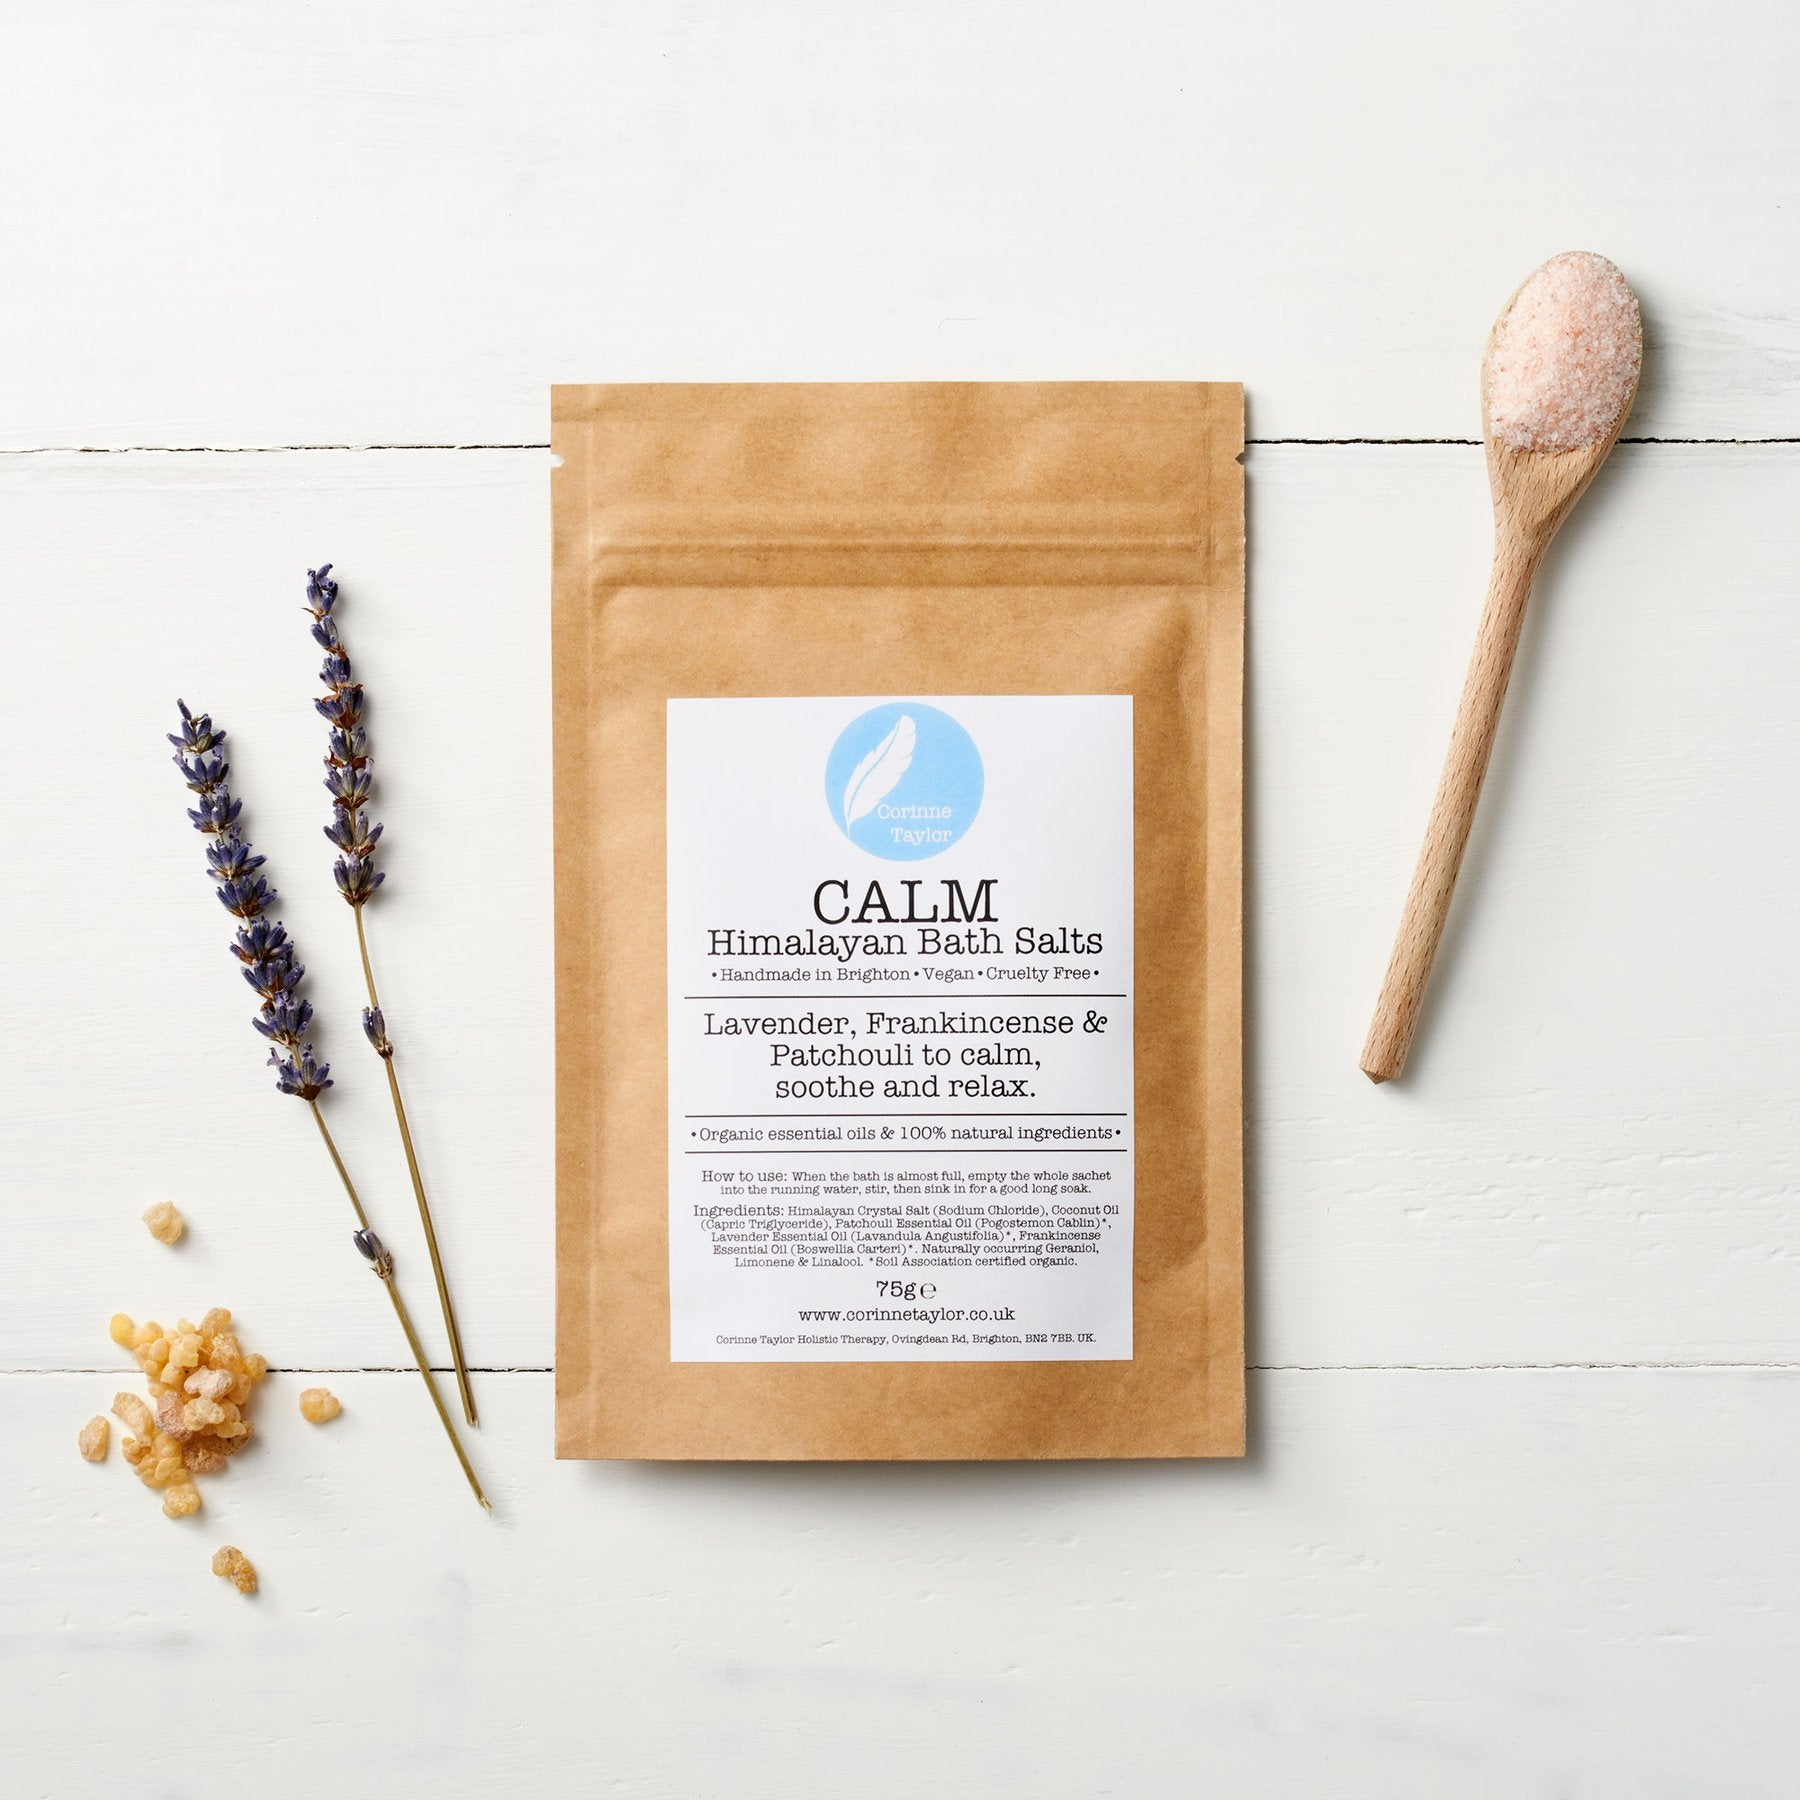 Calm Himalayan Bath Salts (75g) - Beautykind